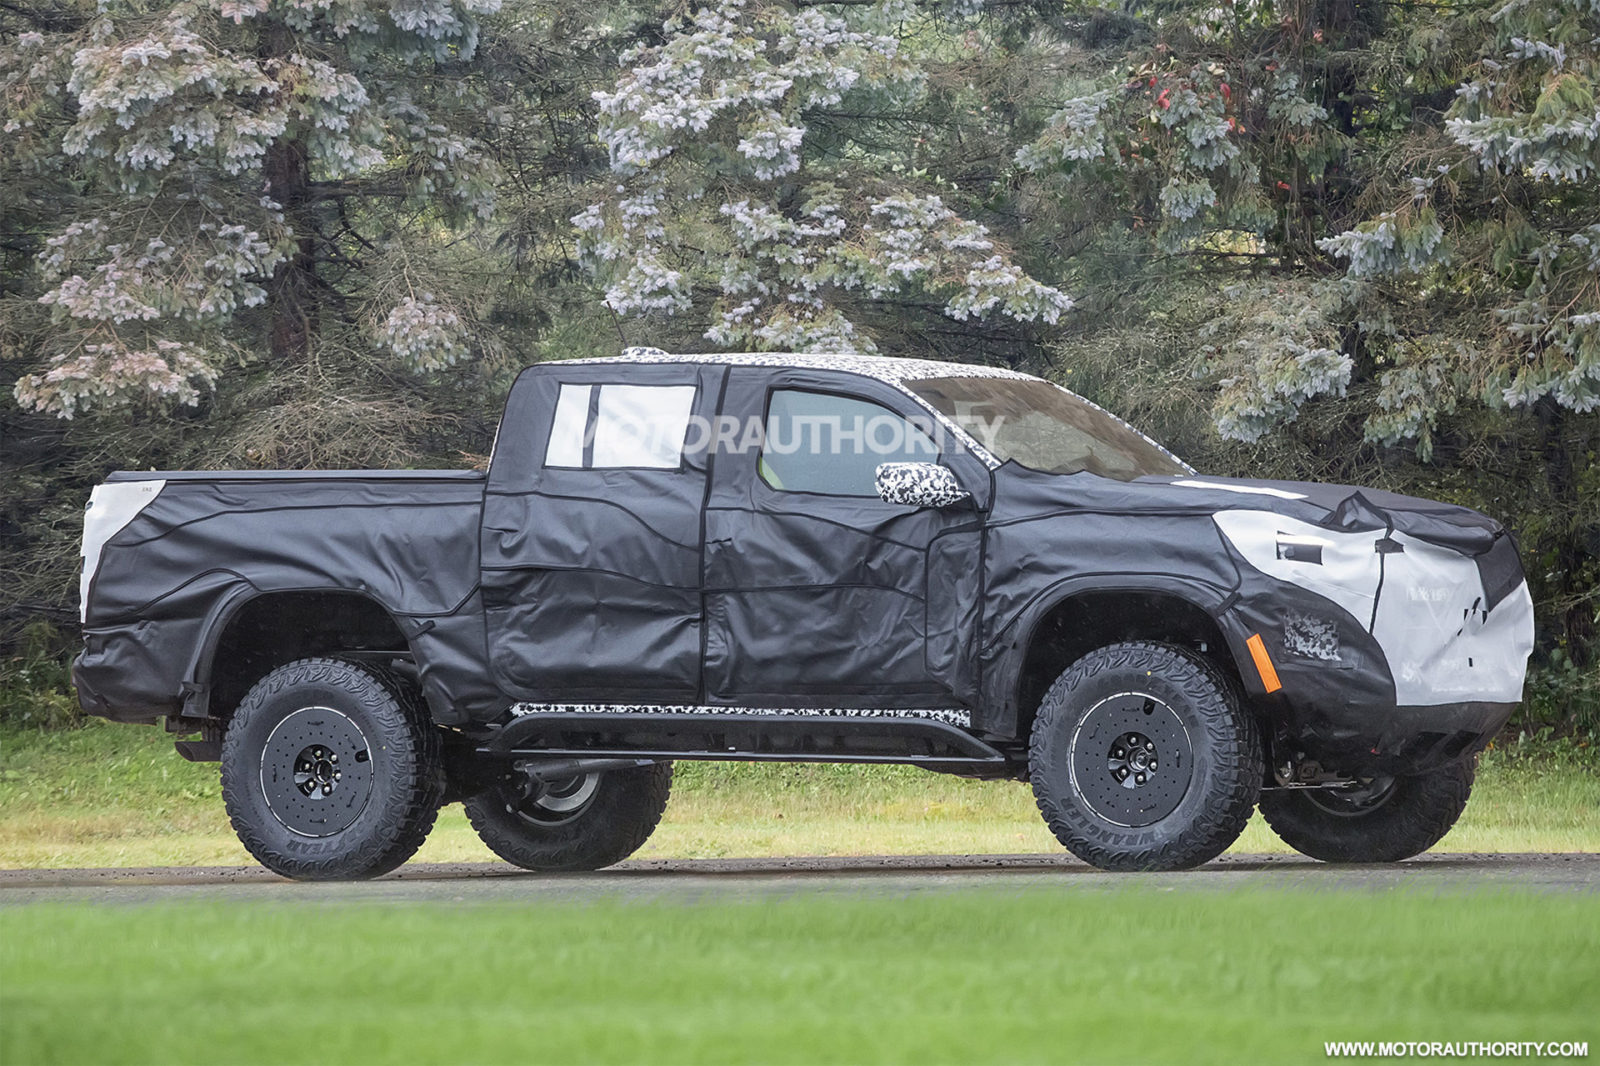 2023-chevrolet-colorado-zr2-spy-shots:-new-generation-of-mid-size-off-road-truck-spotted